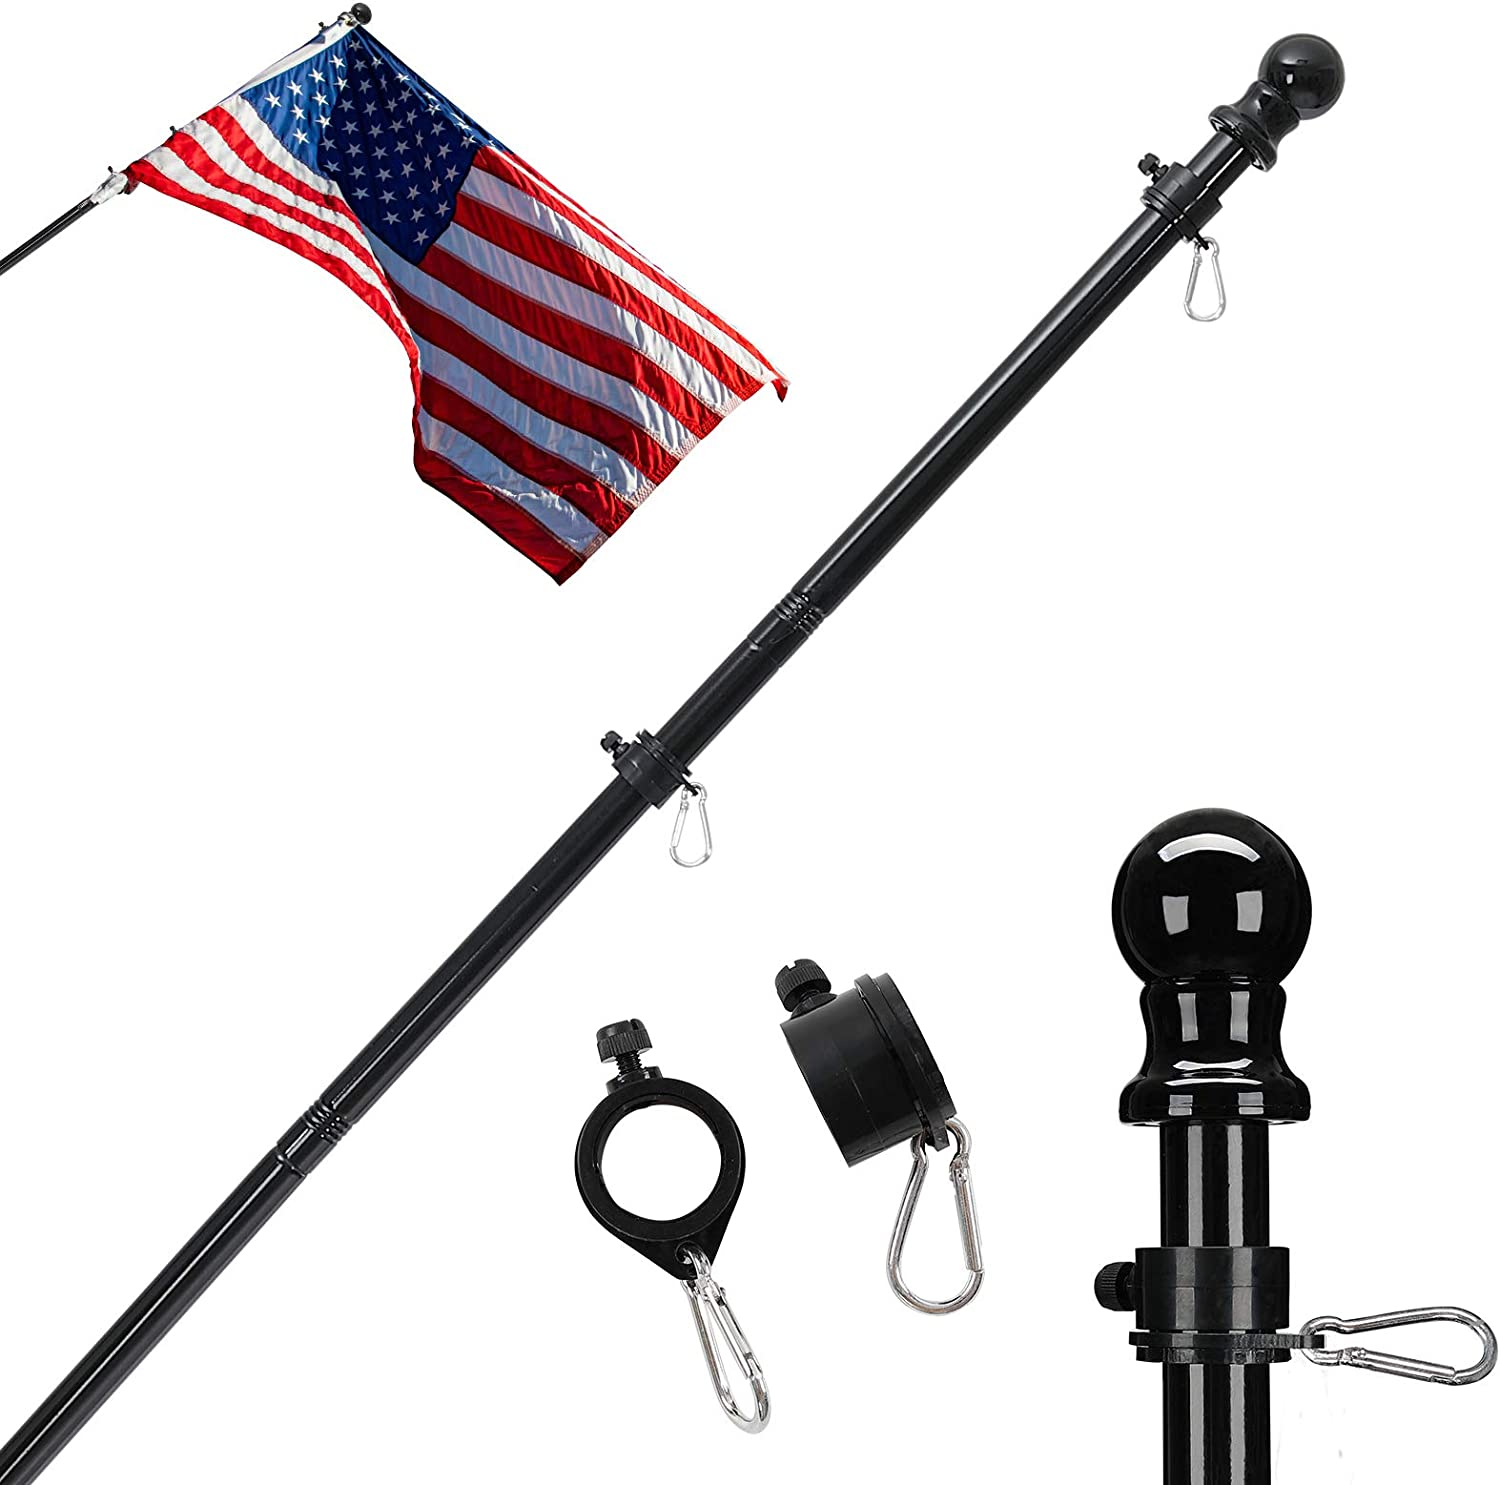 Flag Pole Kit,5 FT American Flag Flagpole Holder and Kit Clips Used for Outdoor House Garden Boat Truck Commercial Stainless Steel Flag Pole(Flag Pole Only) Black